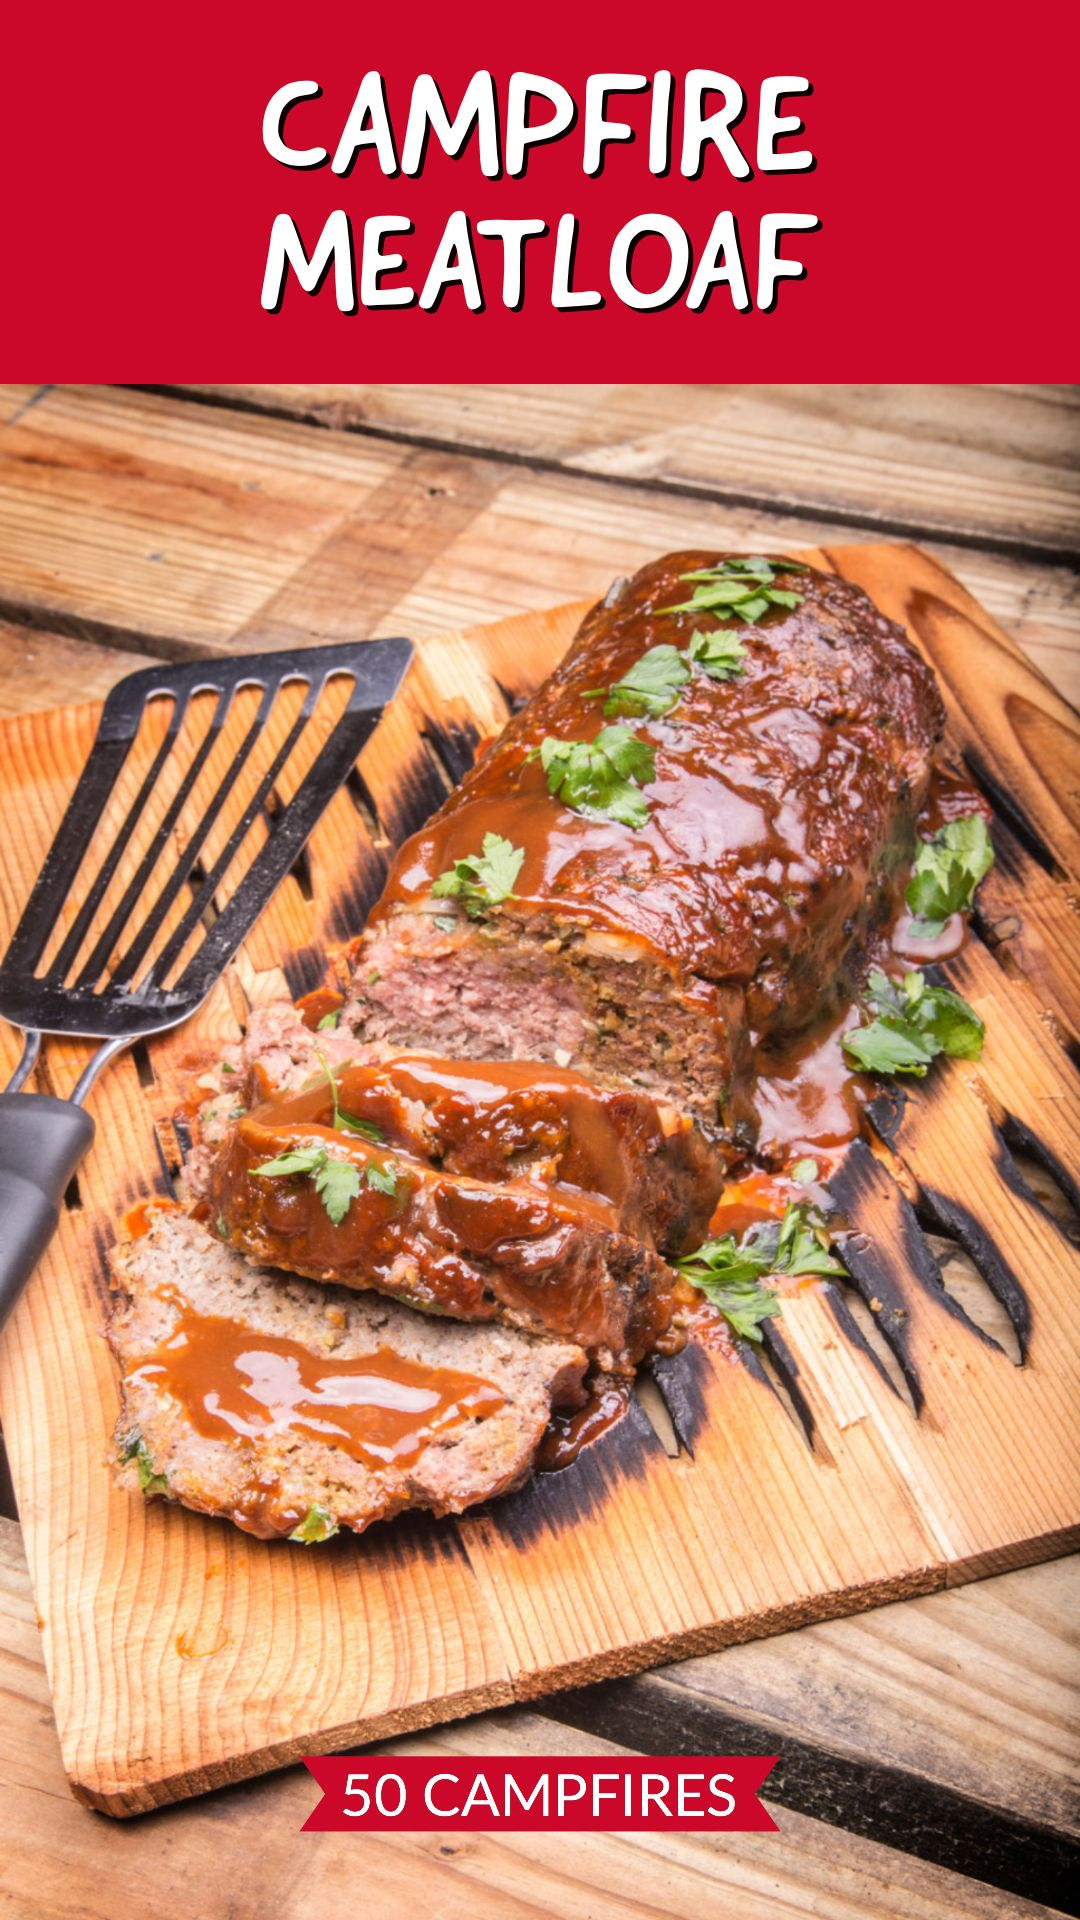 Campfire Meatloaf - 50 Campfires   Recipe   How to cook ...